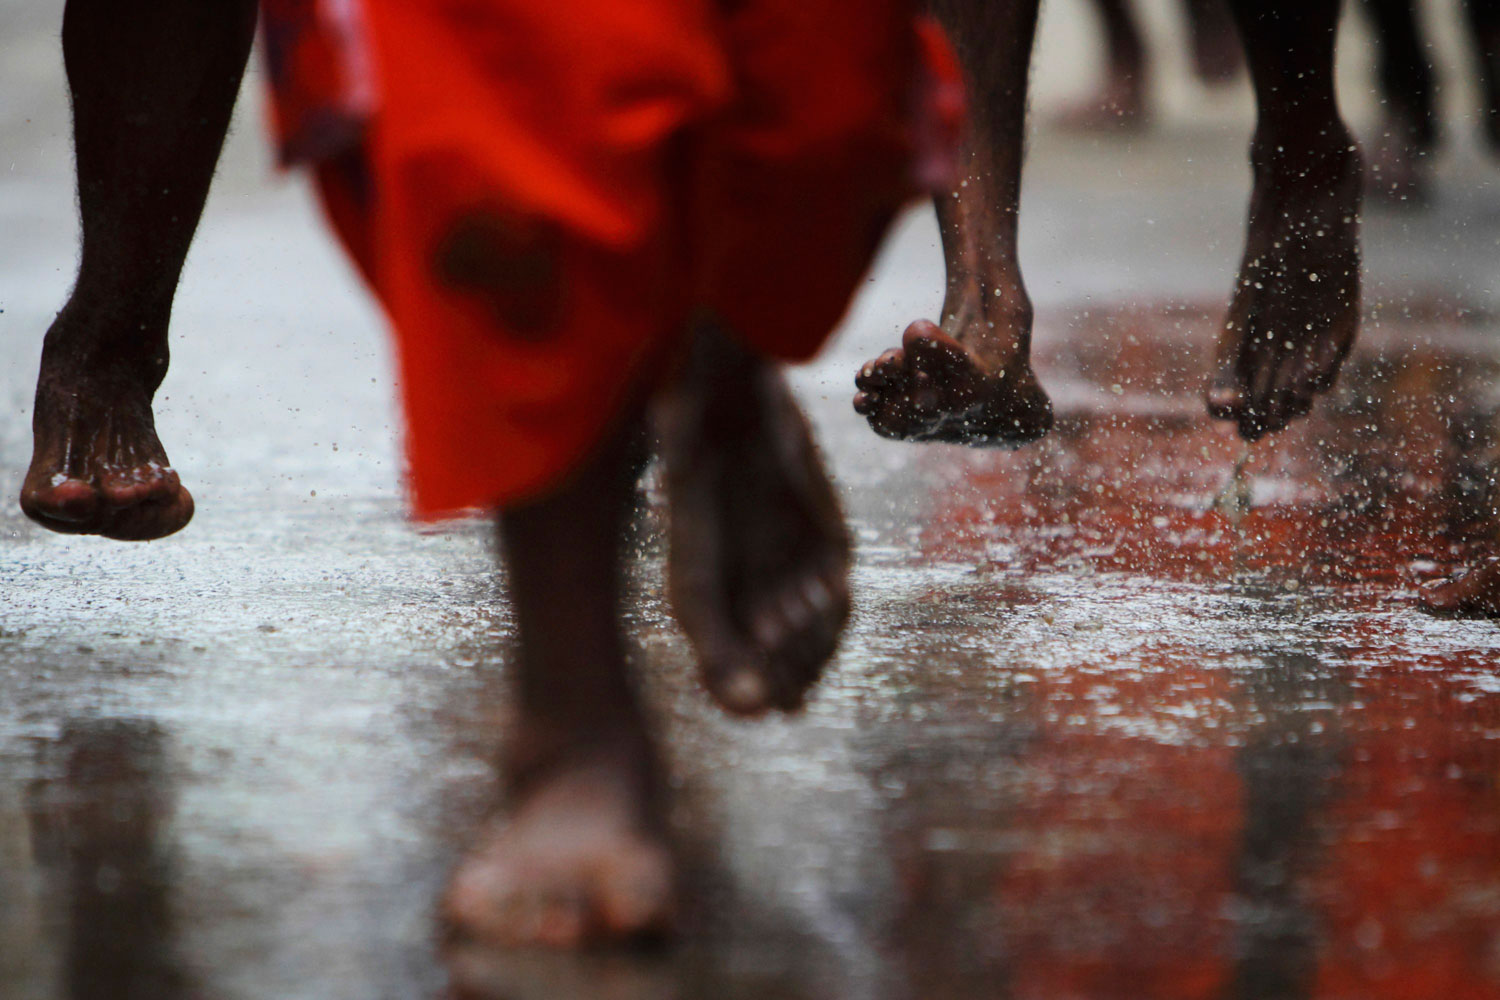 August 1, 2011. The feet of Hindu devotees are seen as they take part in a  Bol Bom  (or Say Shiva) pilgrimage in Kathmandu. The faithful, chanting the name of Lord Shiva, ran some 15 km (9 miles) barefooted to Pashupatinath temple seeking good health, wealth and happiness. Water is sprayed for them to cool down after the long distance run.